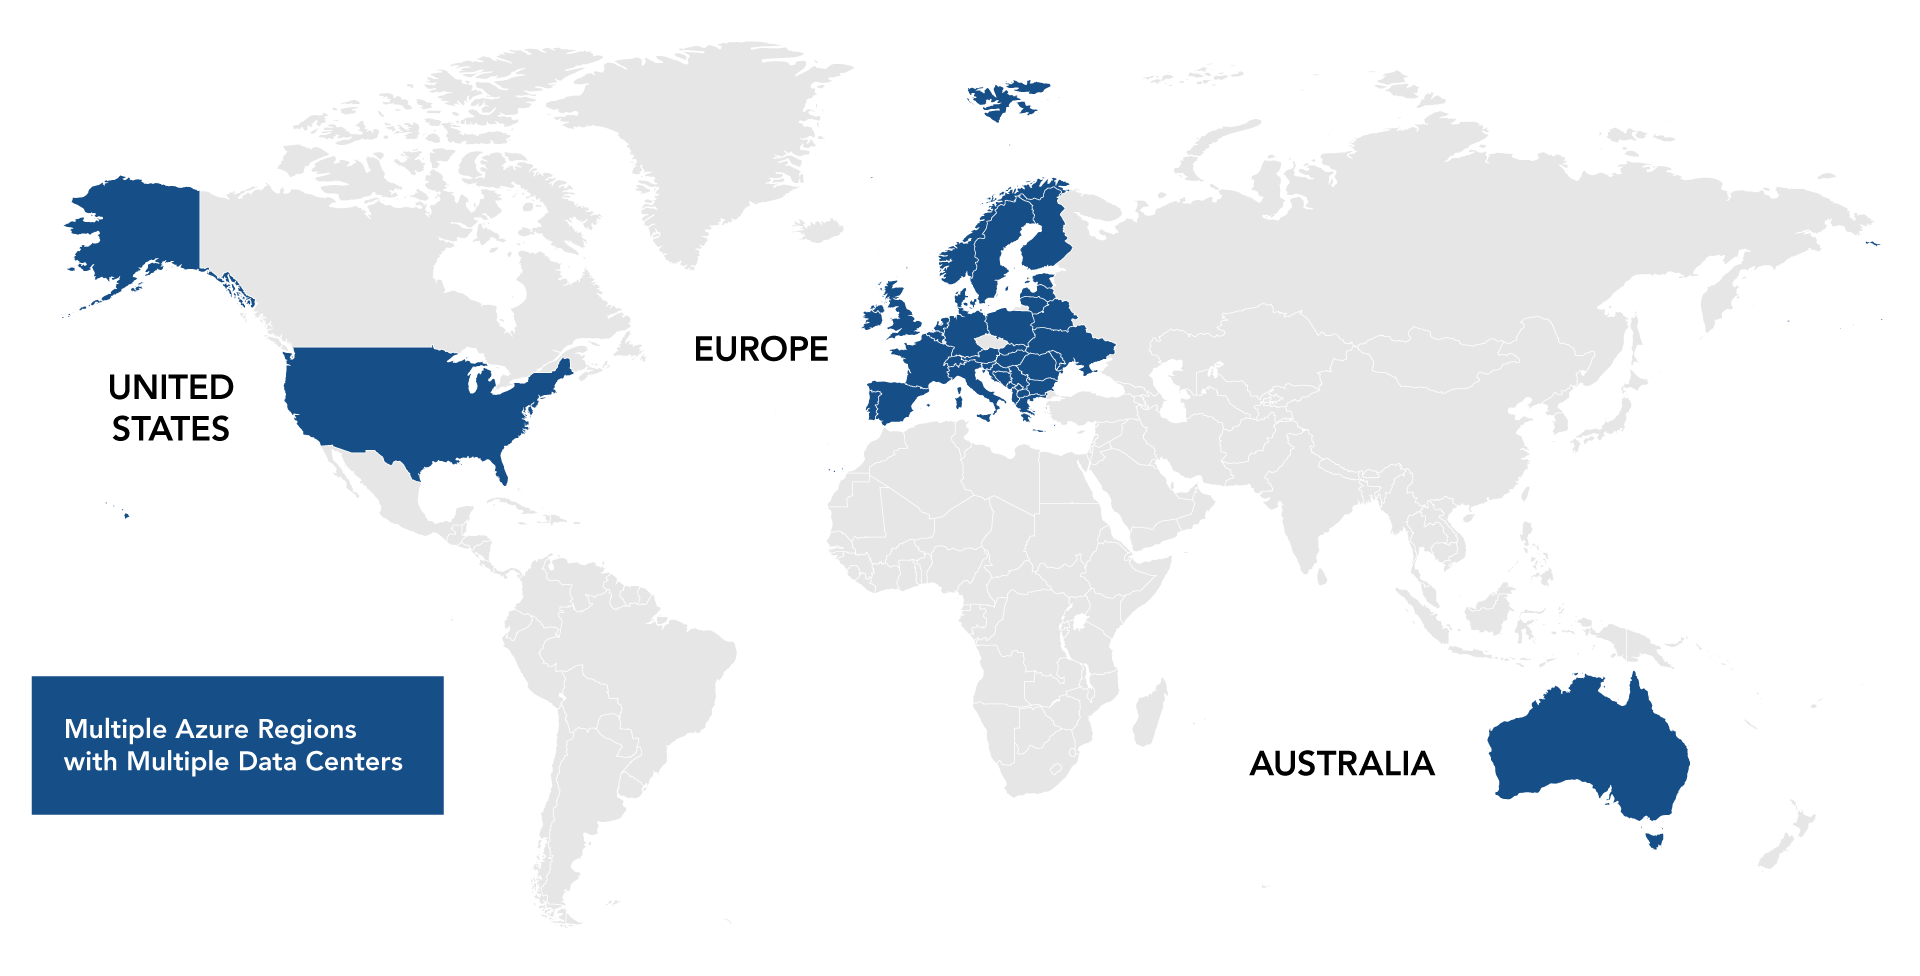 Secure Data Centers Worldwide map